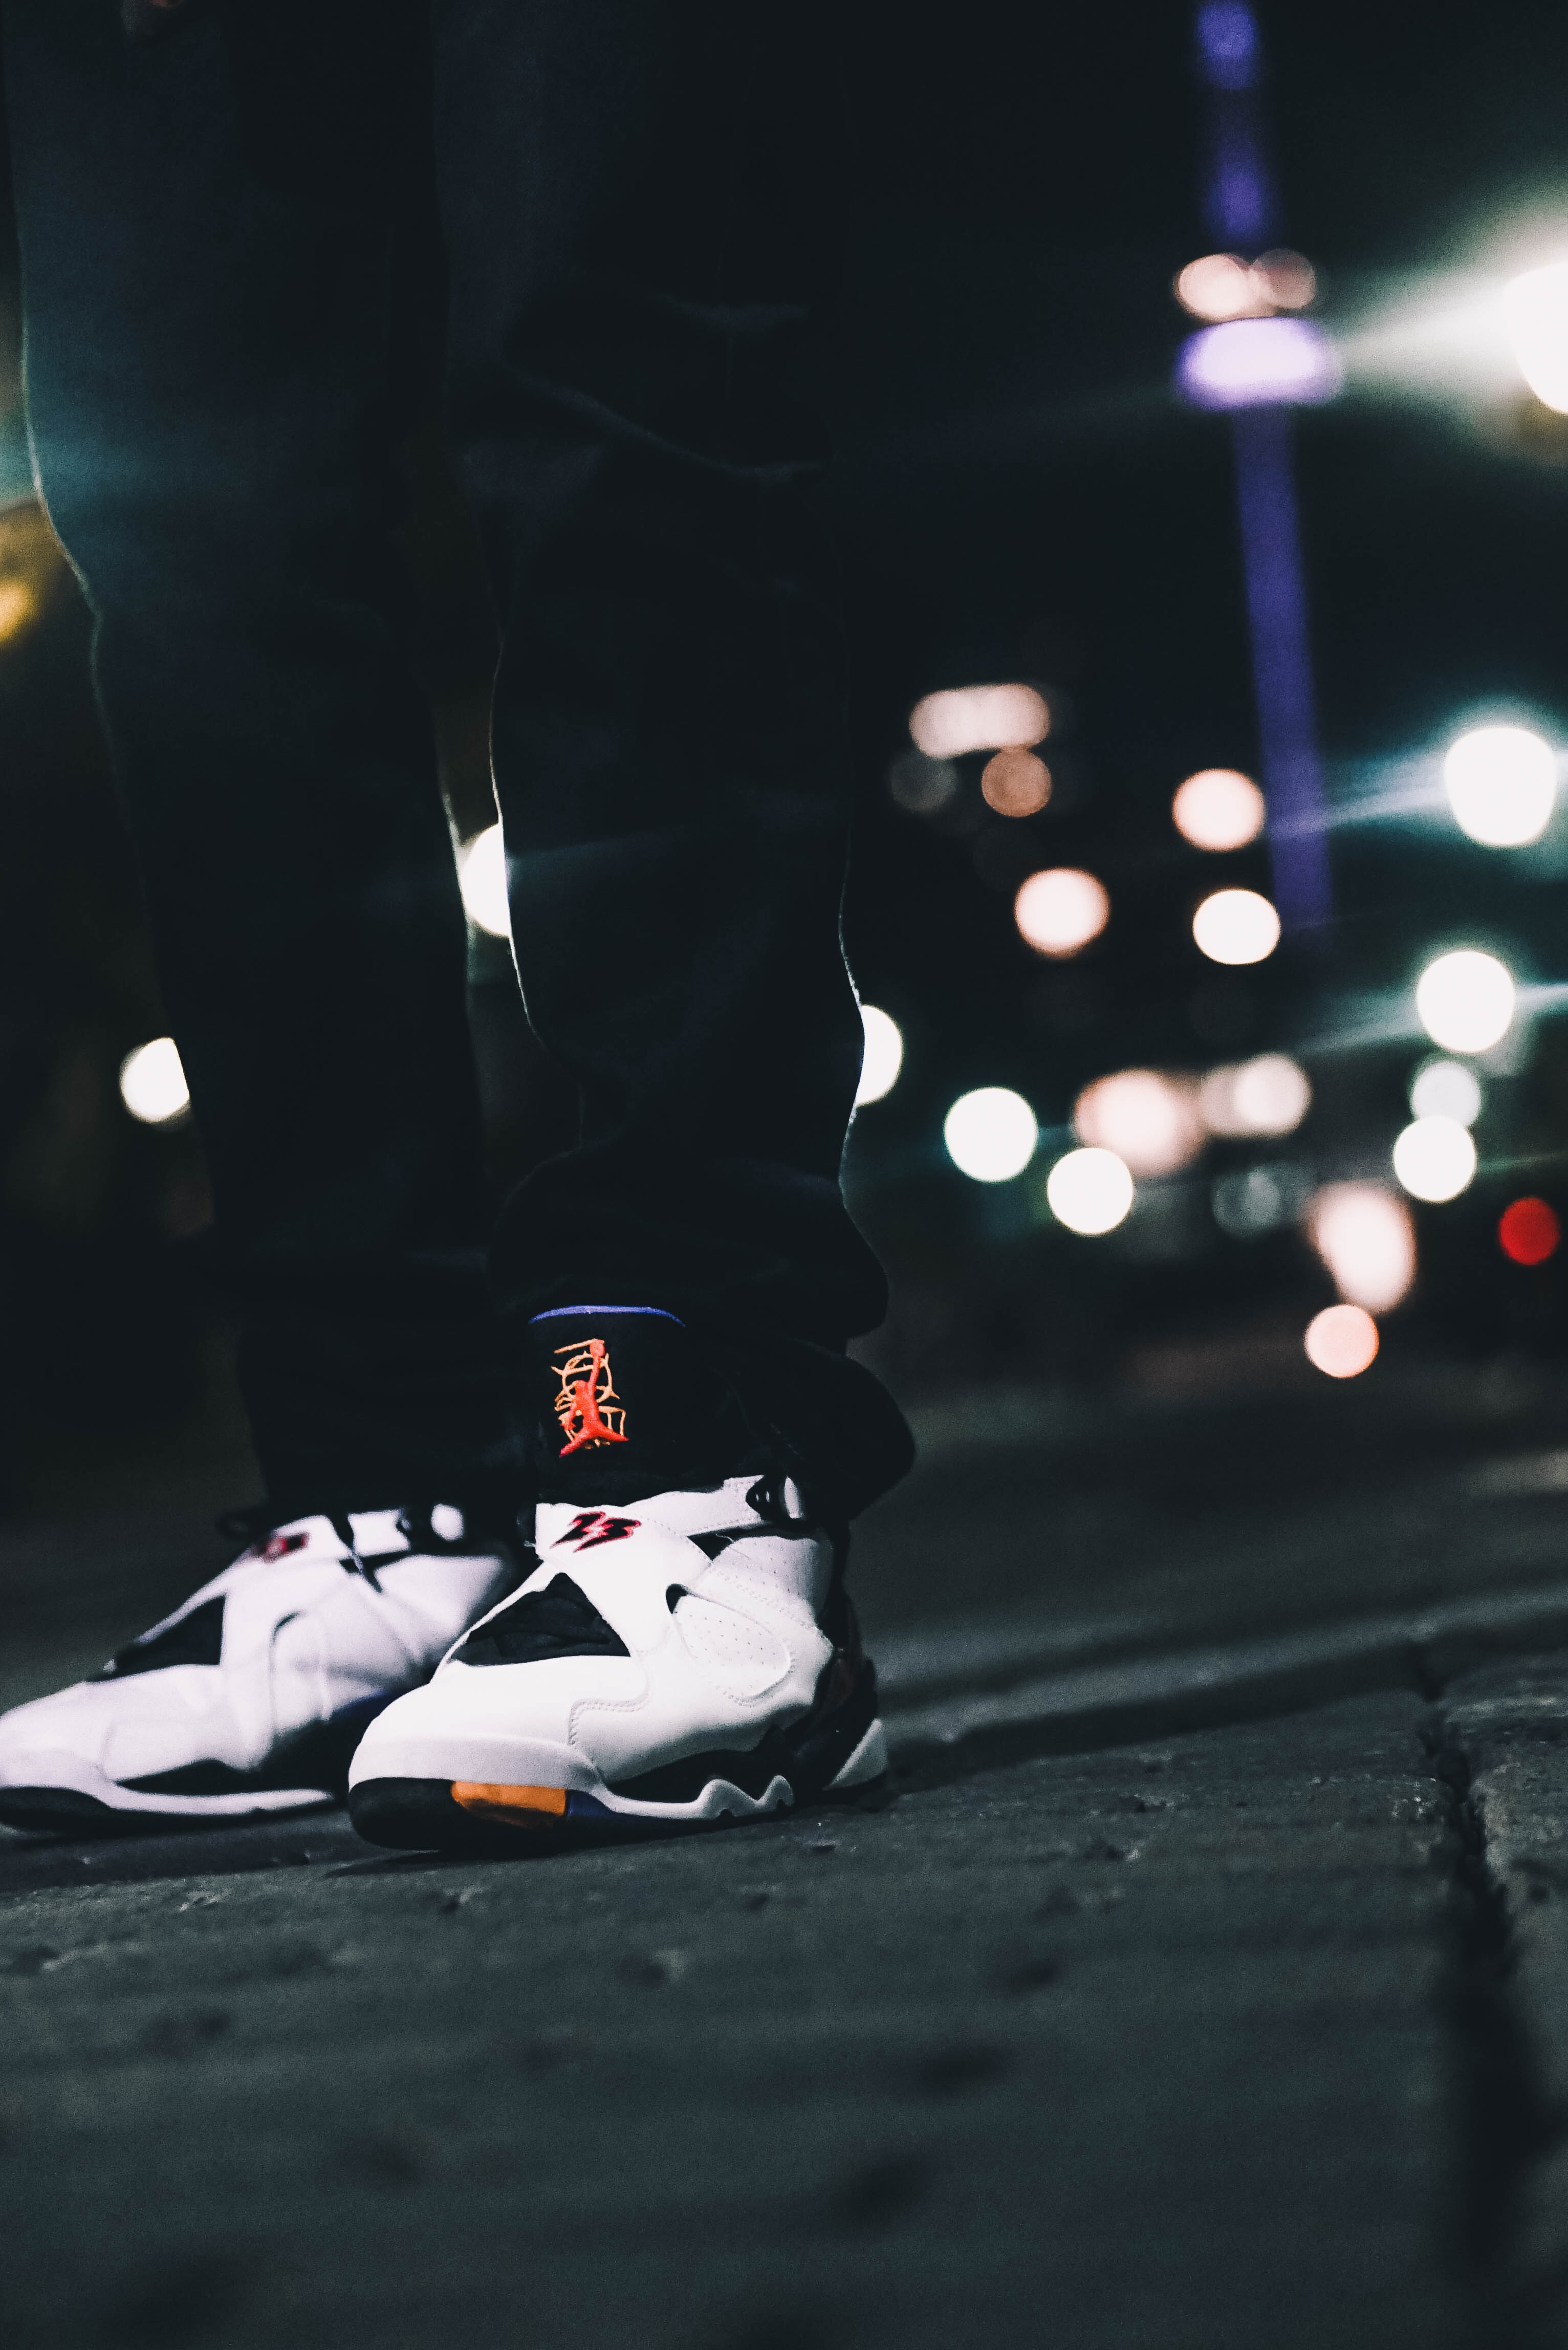 shallow focus photography of person wearing Air Jordan 8's standing on gray concrete floor